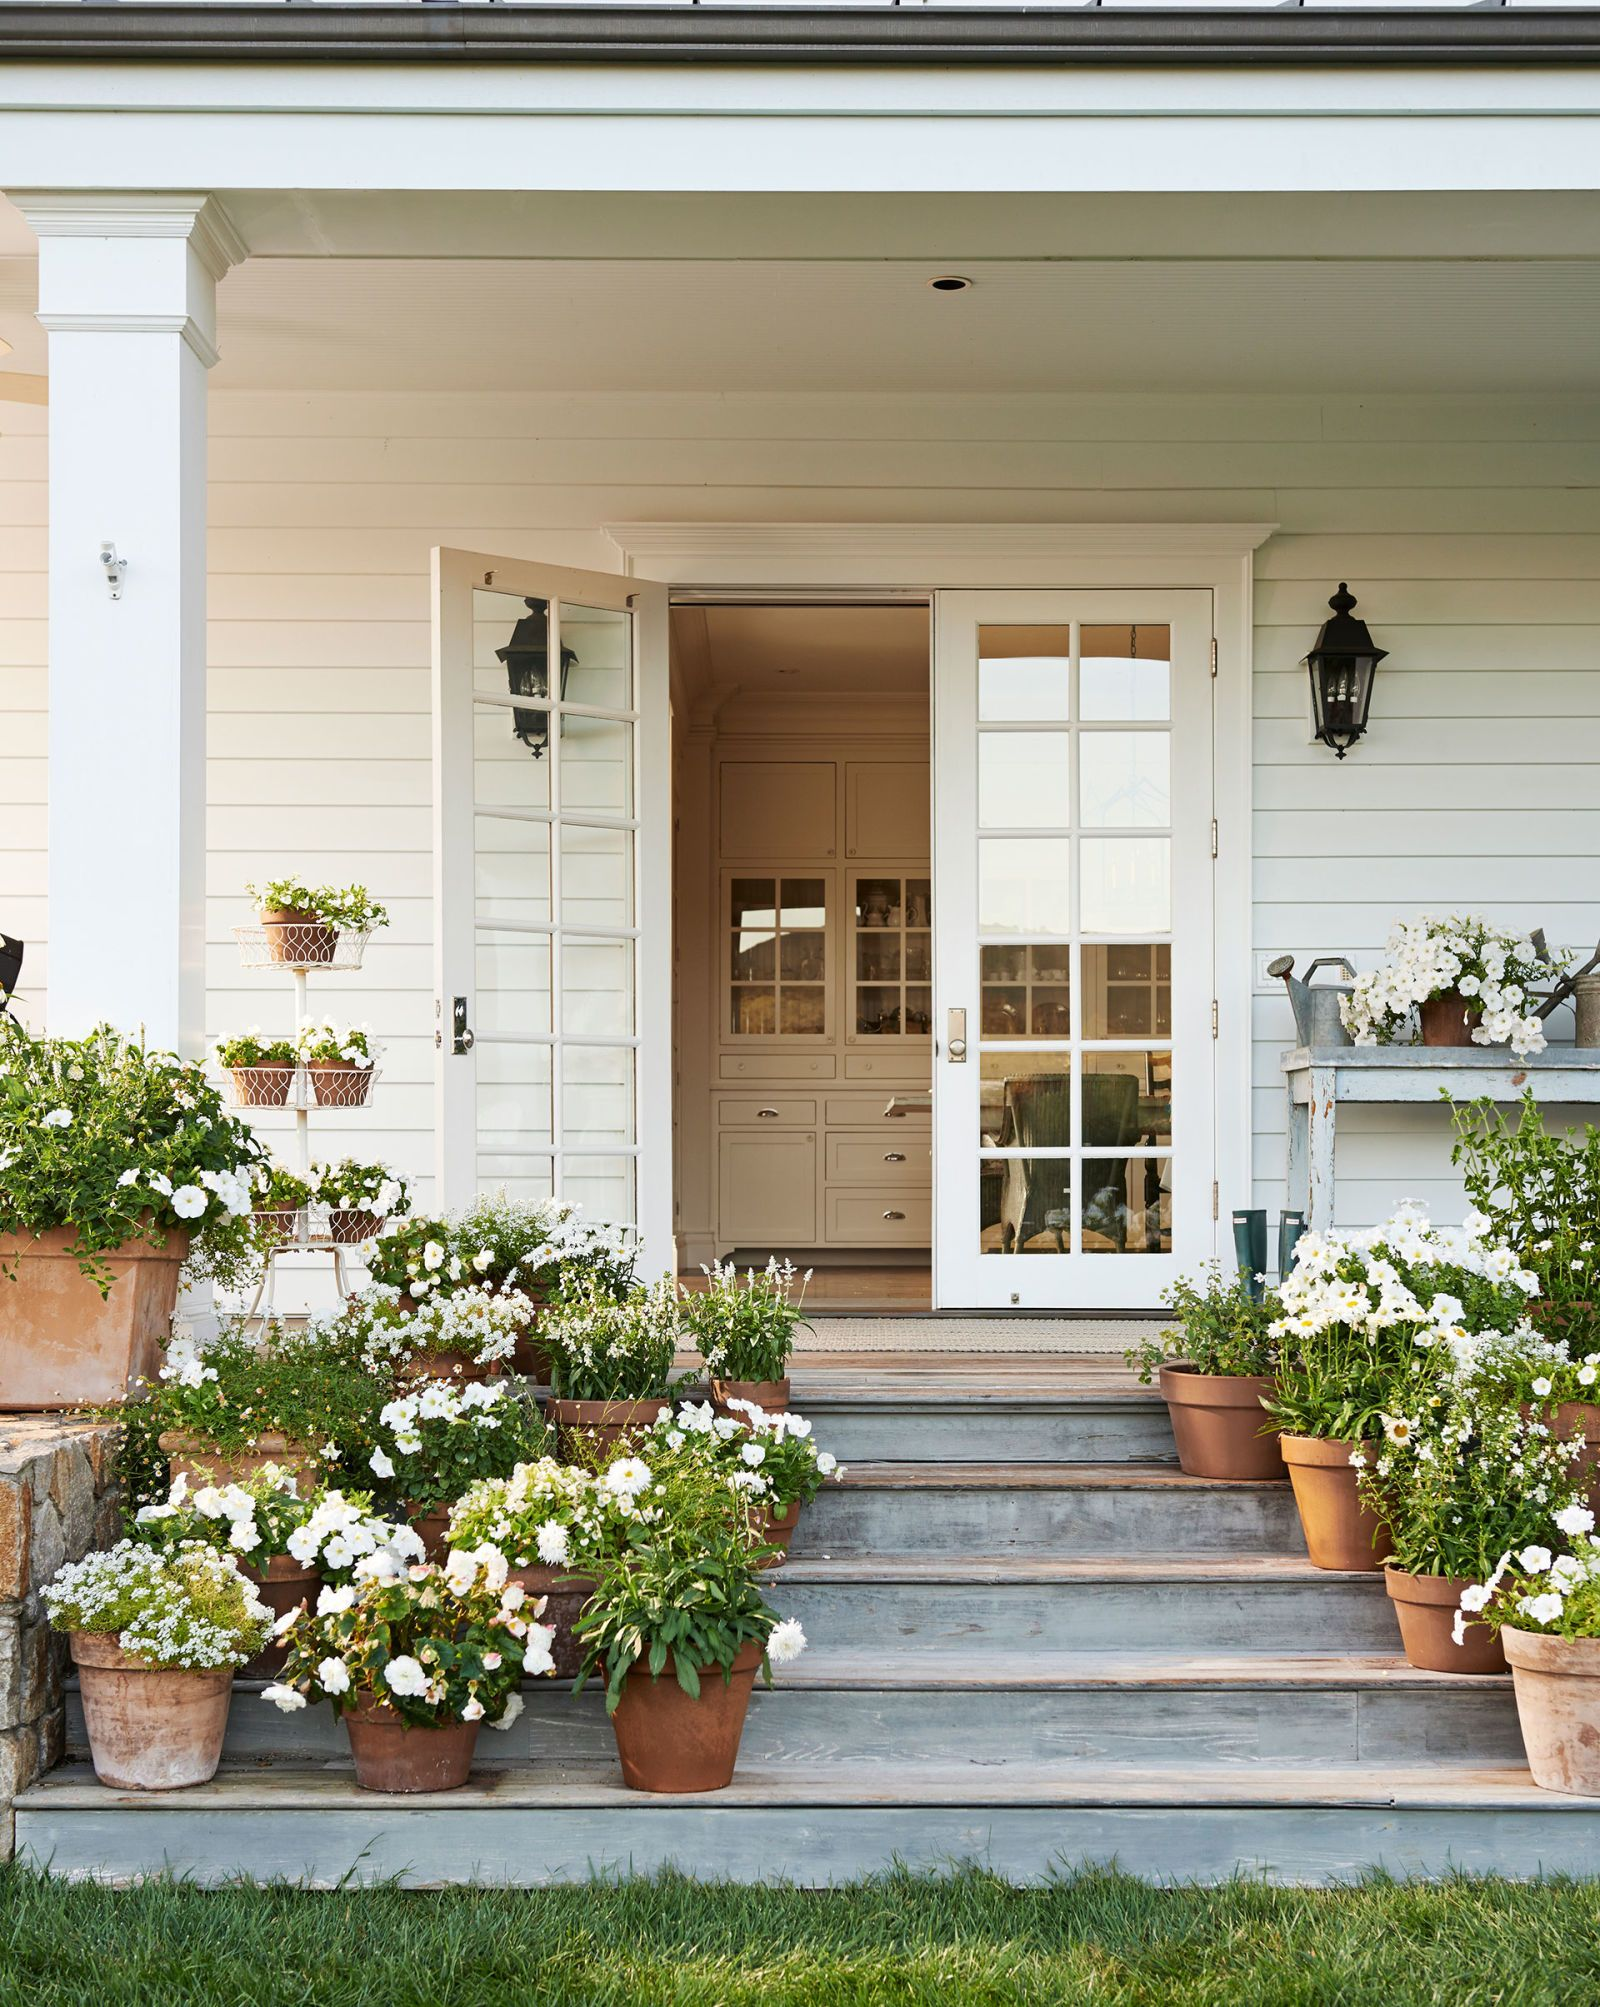 Charming back porch off farmhouse kitchen with wide steps massed with terracotta pots of flowers. #porch #decoratingideas #steps #farmhouse